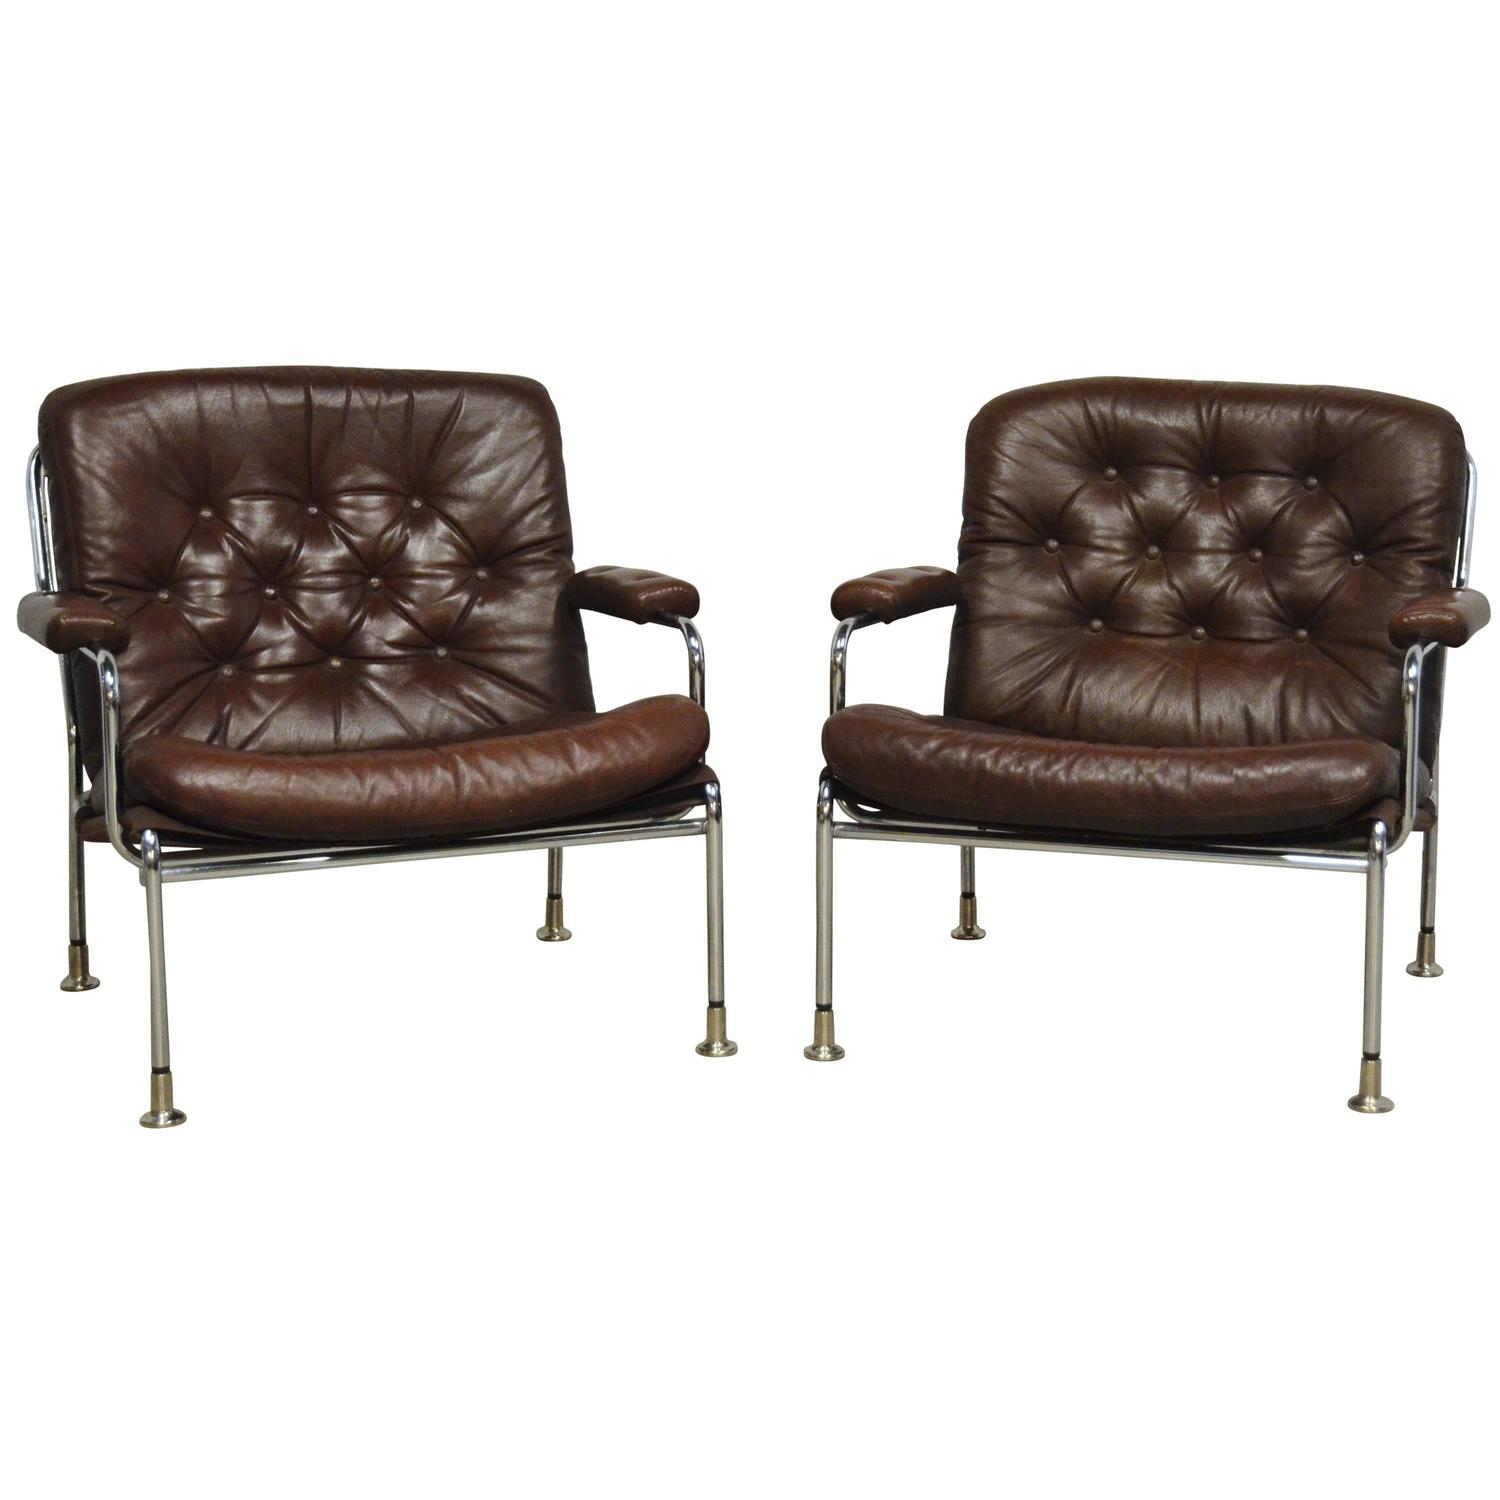 Swedish Chrome And Leather Armchair Attributed To Bruno Mathsson For Dux At 1stdibs